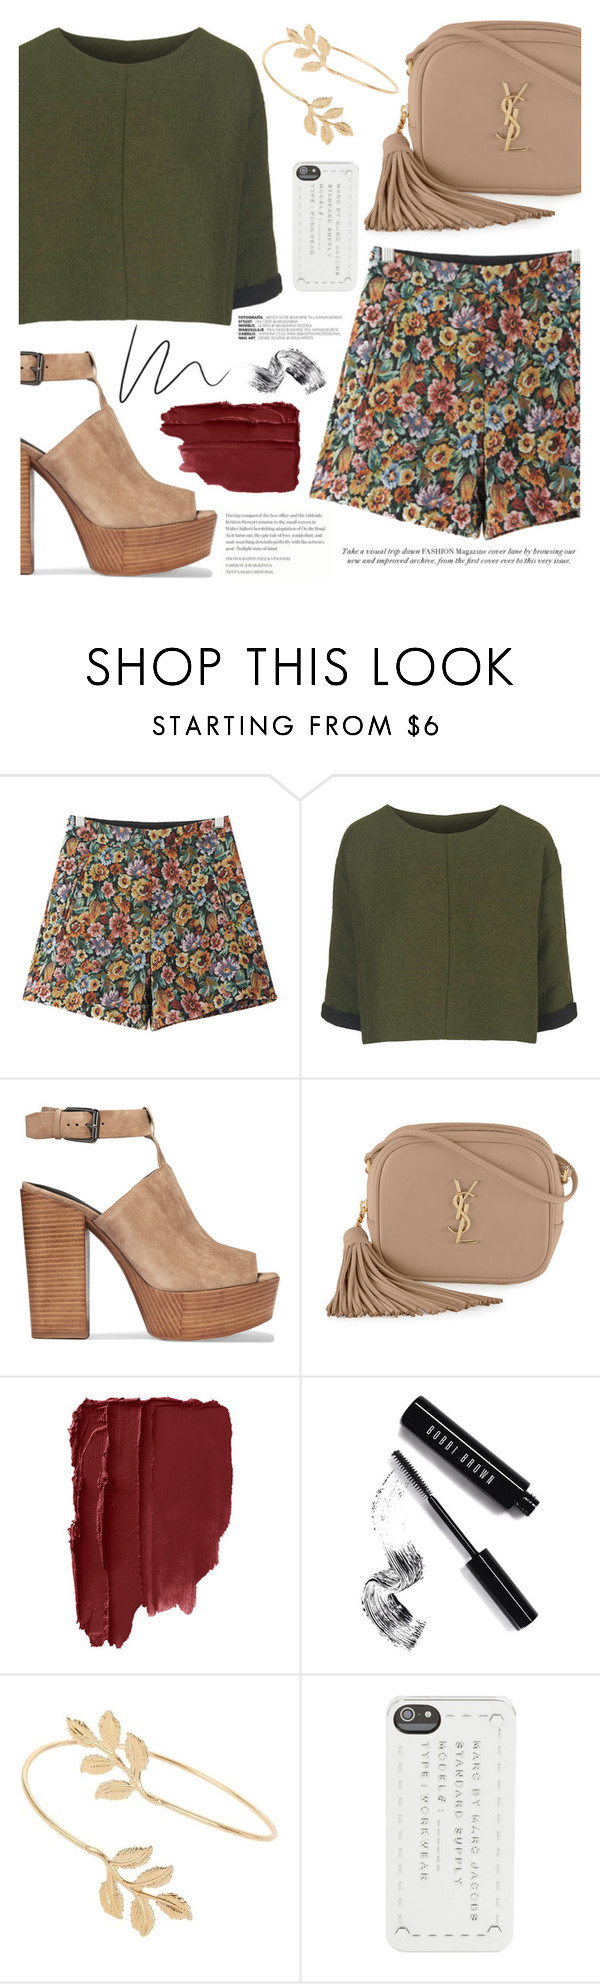 """""""mon amour"""" by celinenvy ❤ liked on Polyvore featuring Chicnova Fashion, Topshop, Rebecca Minkoff, Yves Saint Laurent, Bobbi Brown Cosmetics, Miss Selfridge and Marc by Marc Jacobs"""